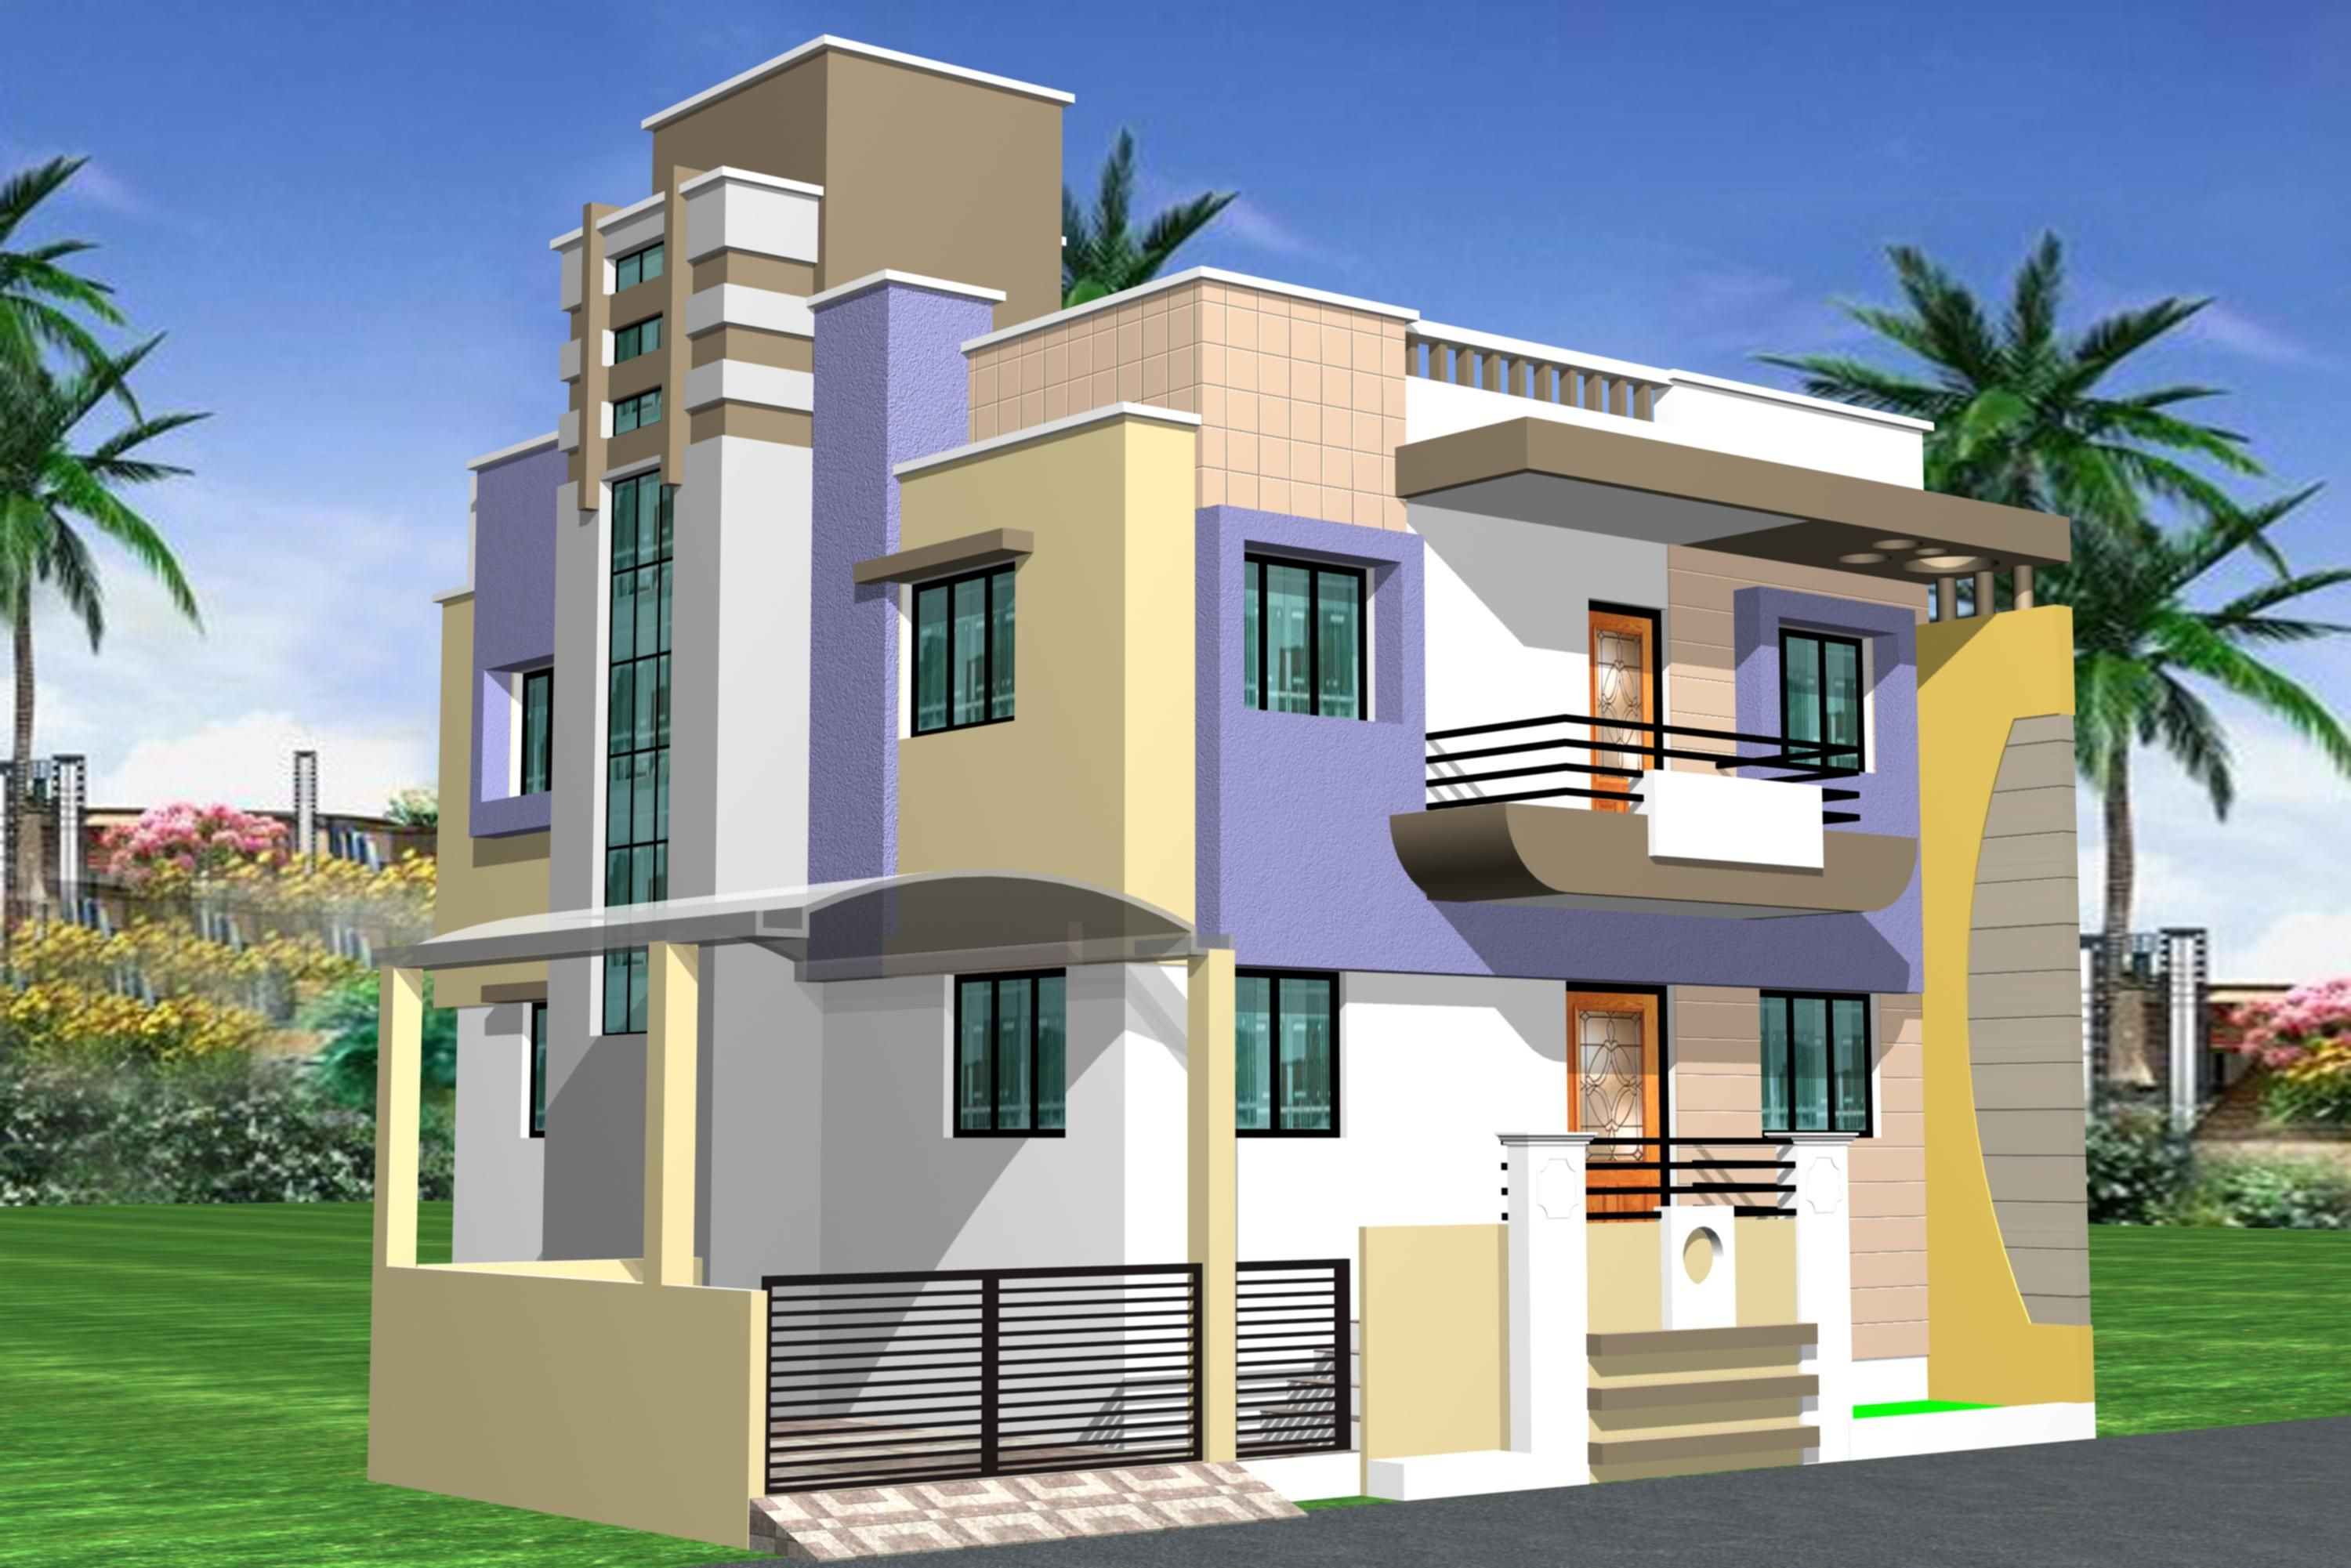 30x40 house front elevation designs - Google Search | Projects to ...